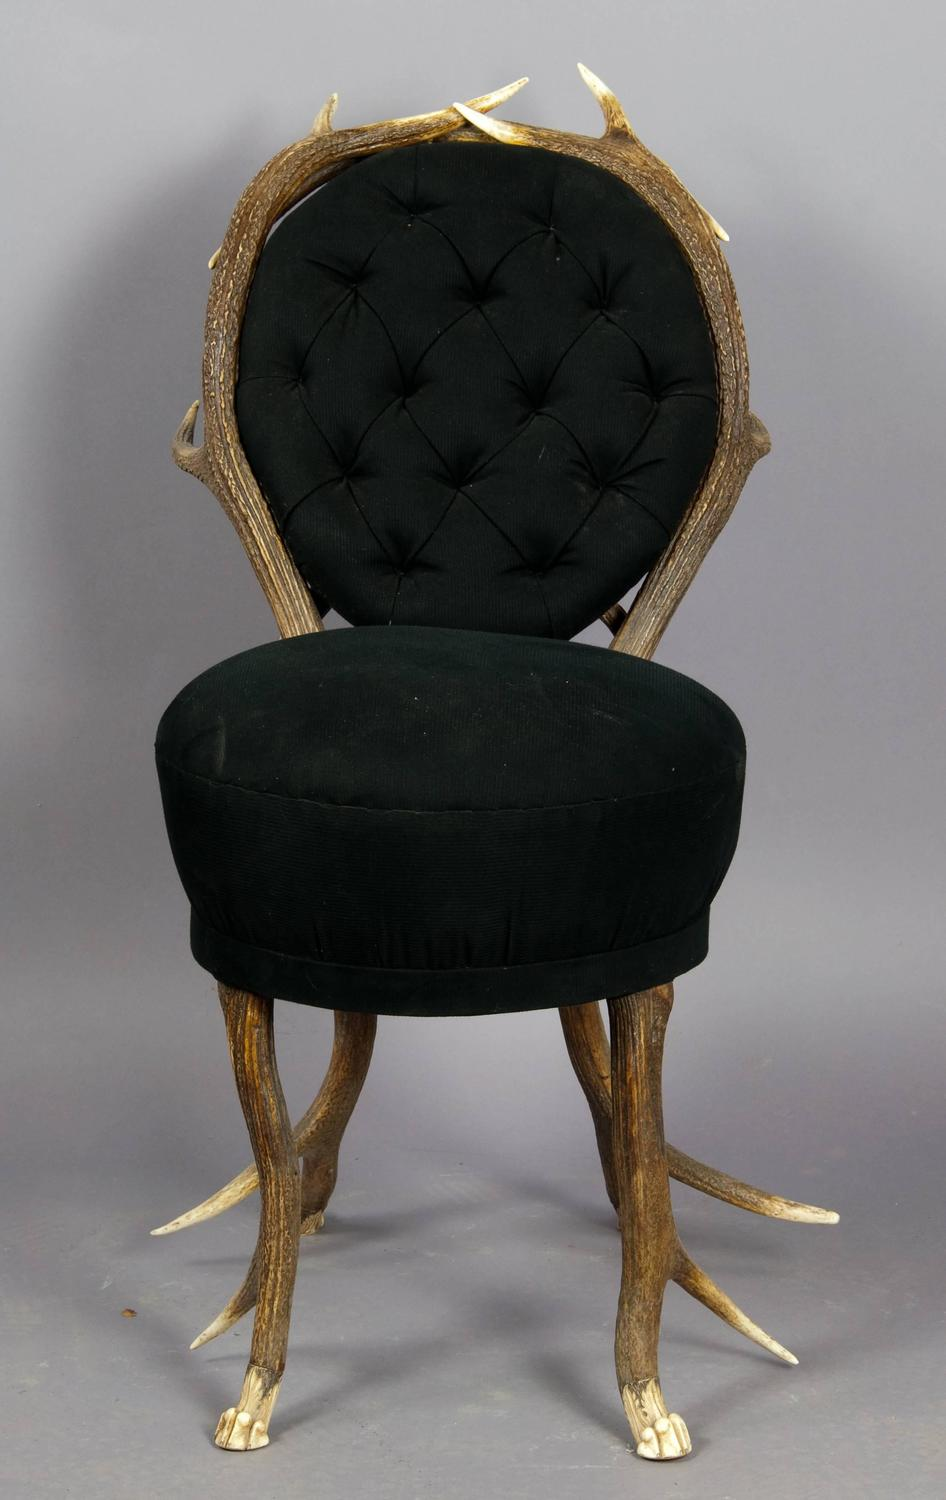 pair of rare antler parlor chairs french circa 1860 for sale at 1stdibs. Black Bedroom Furniture Sets. Home Design Ideas